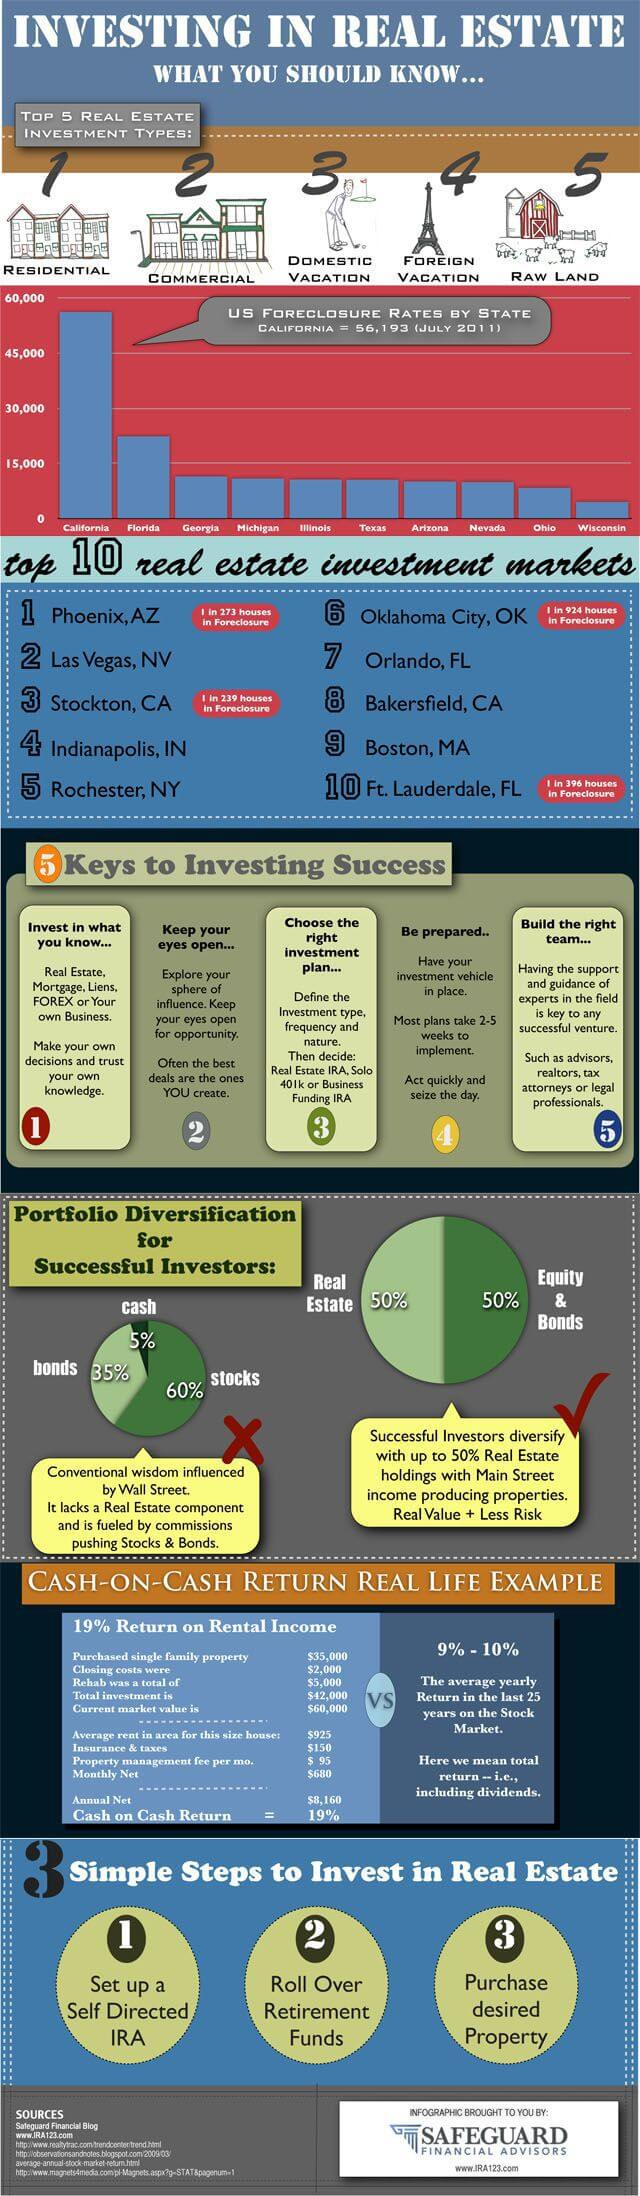 tips-to-invest-in-real-estate-as-diversified-investment-tips-tipsographic